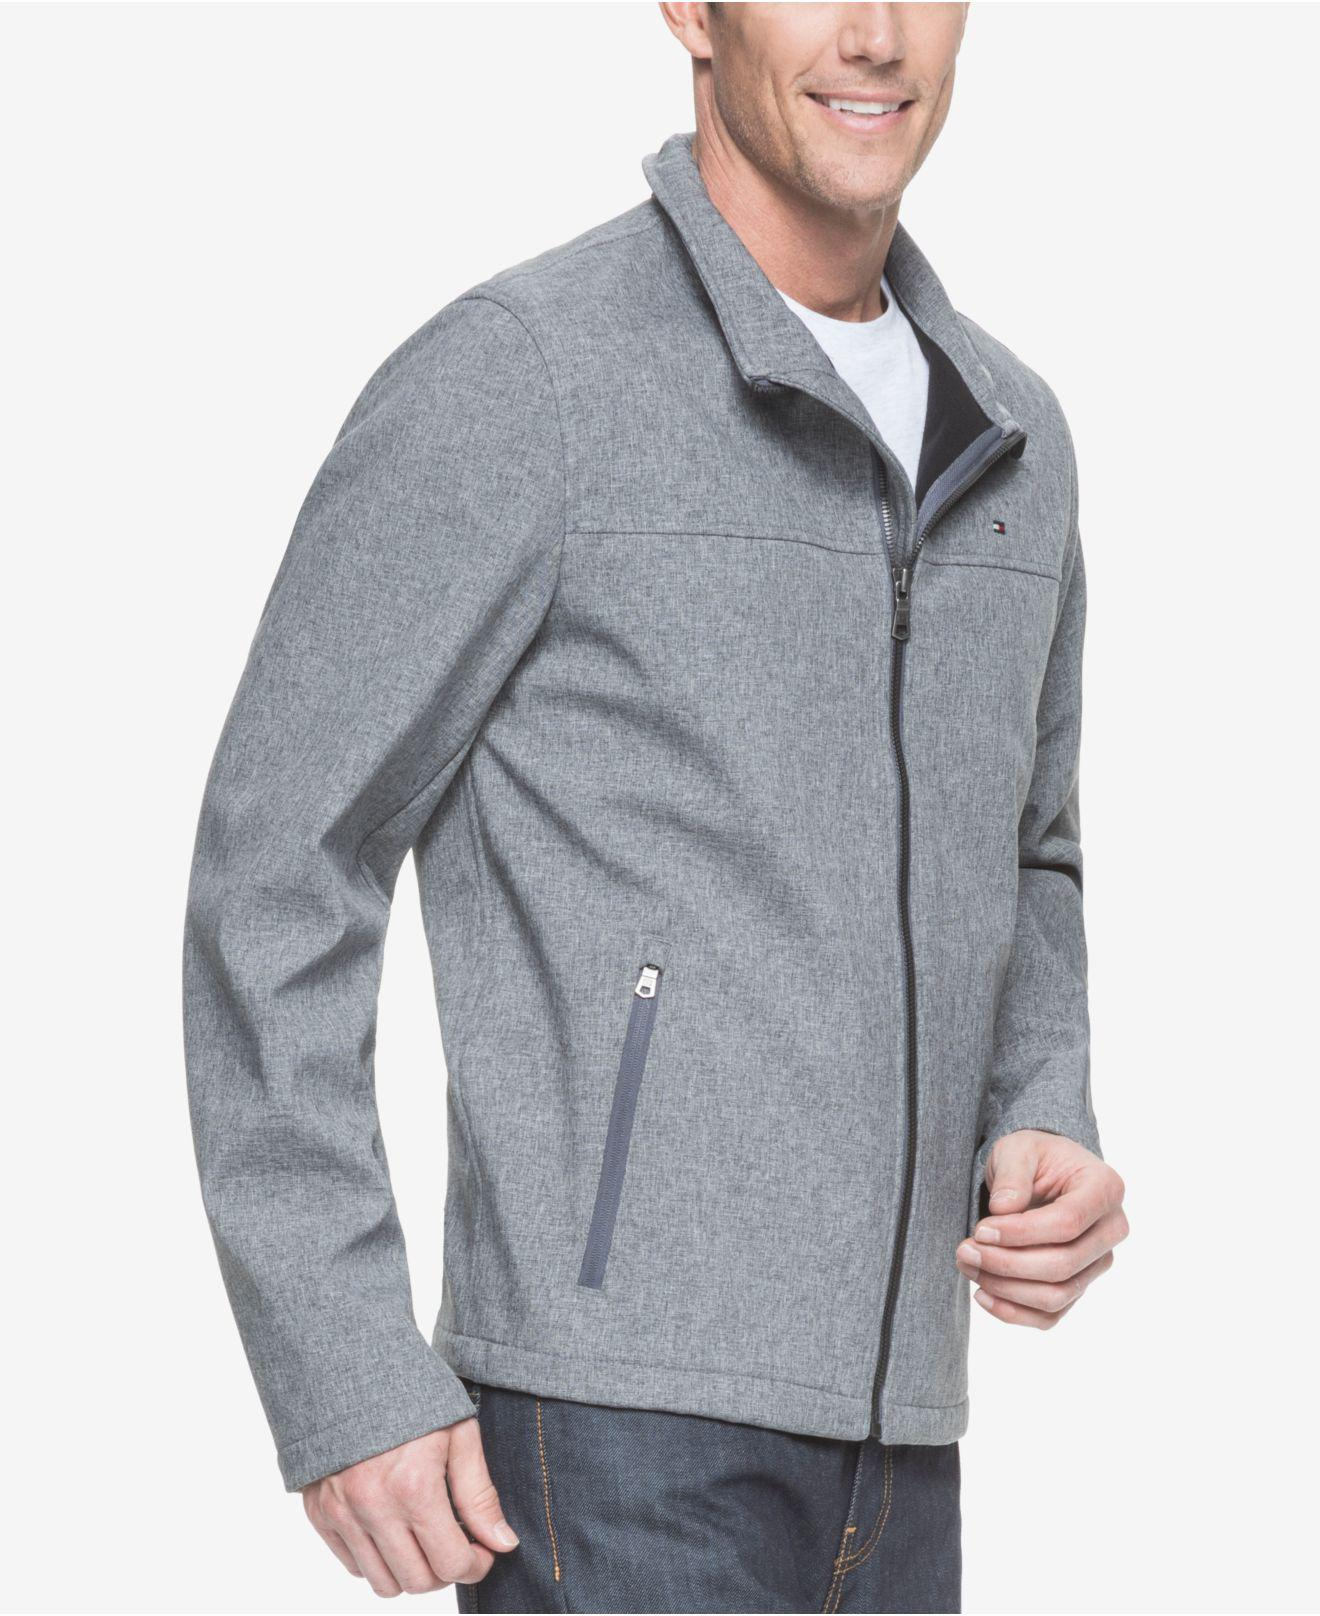 47ede0f1 Tommy Hilfiger - Gray Big & Tall Classic Softshell Jacket for Men - Lyst.  View fullscreen